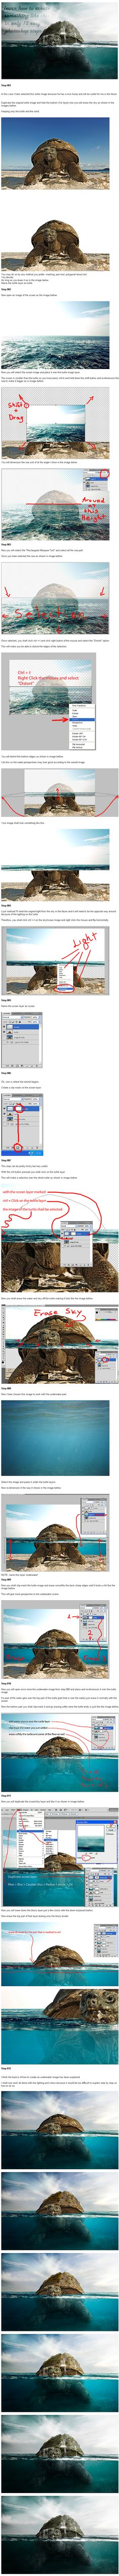 Under Water Easy Photoshop Tutorial by PSHoudini on deviantART